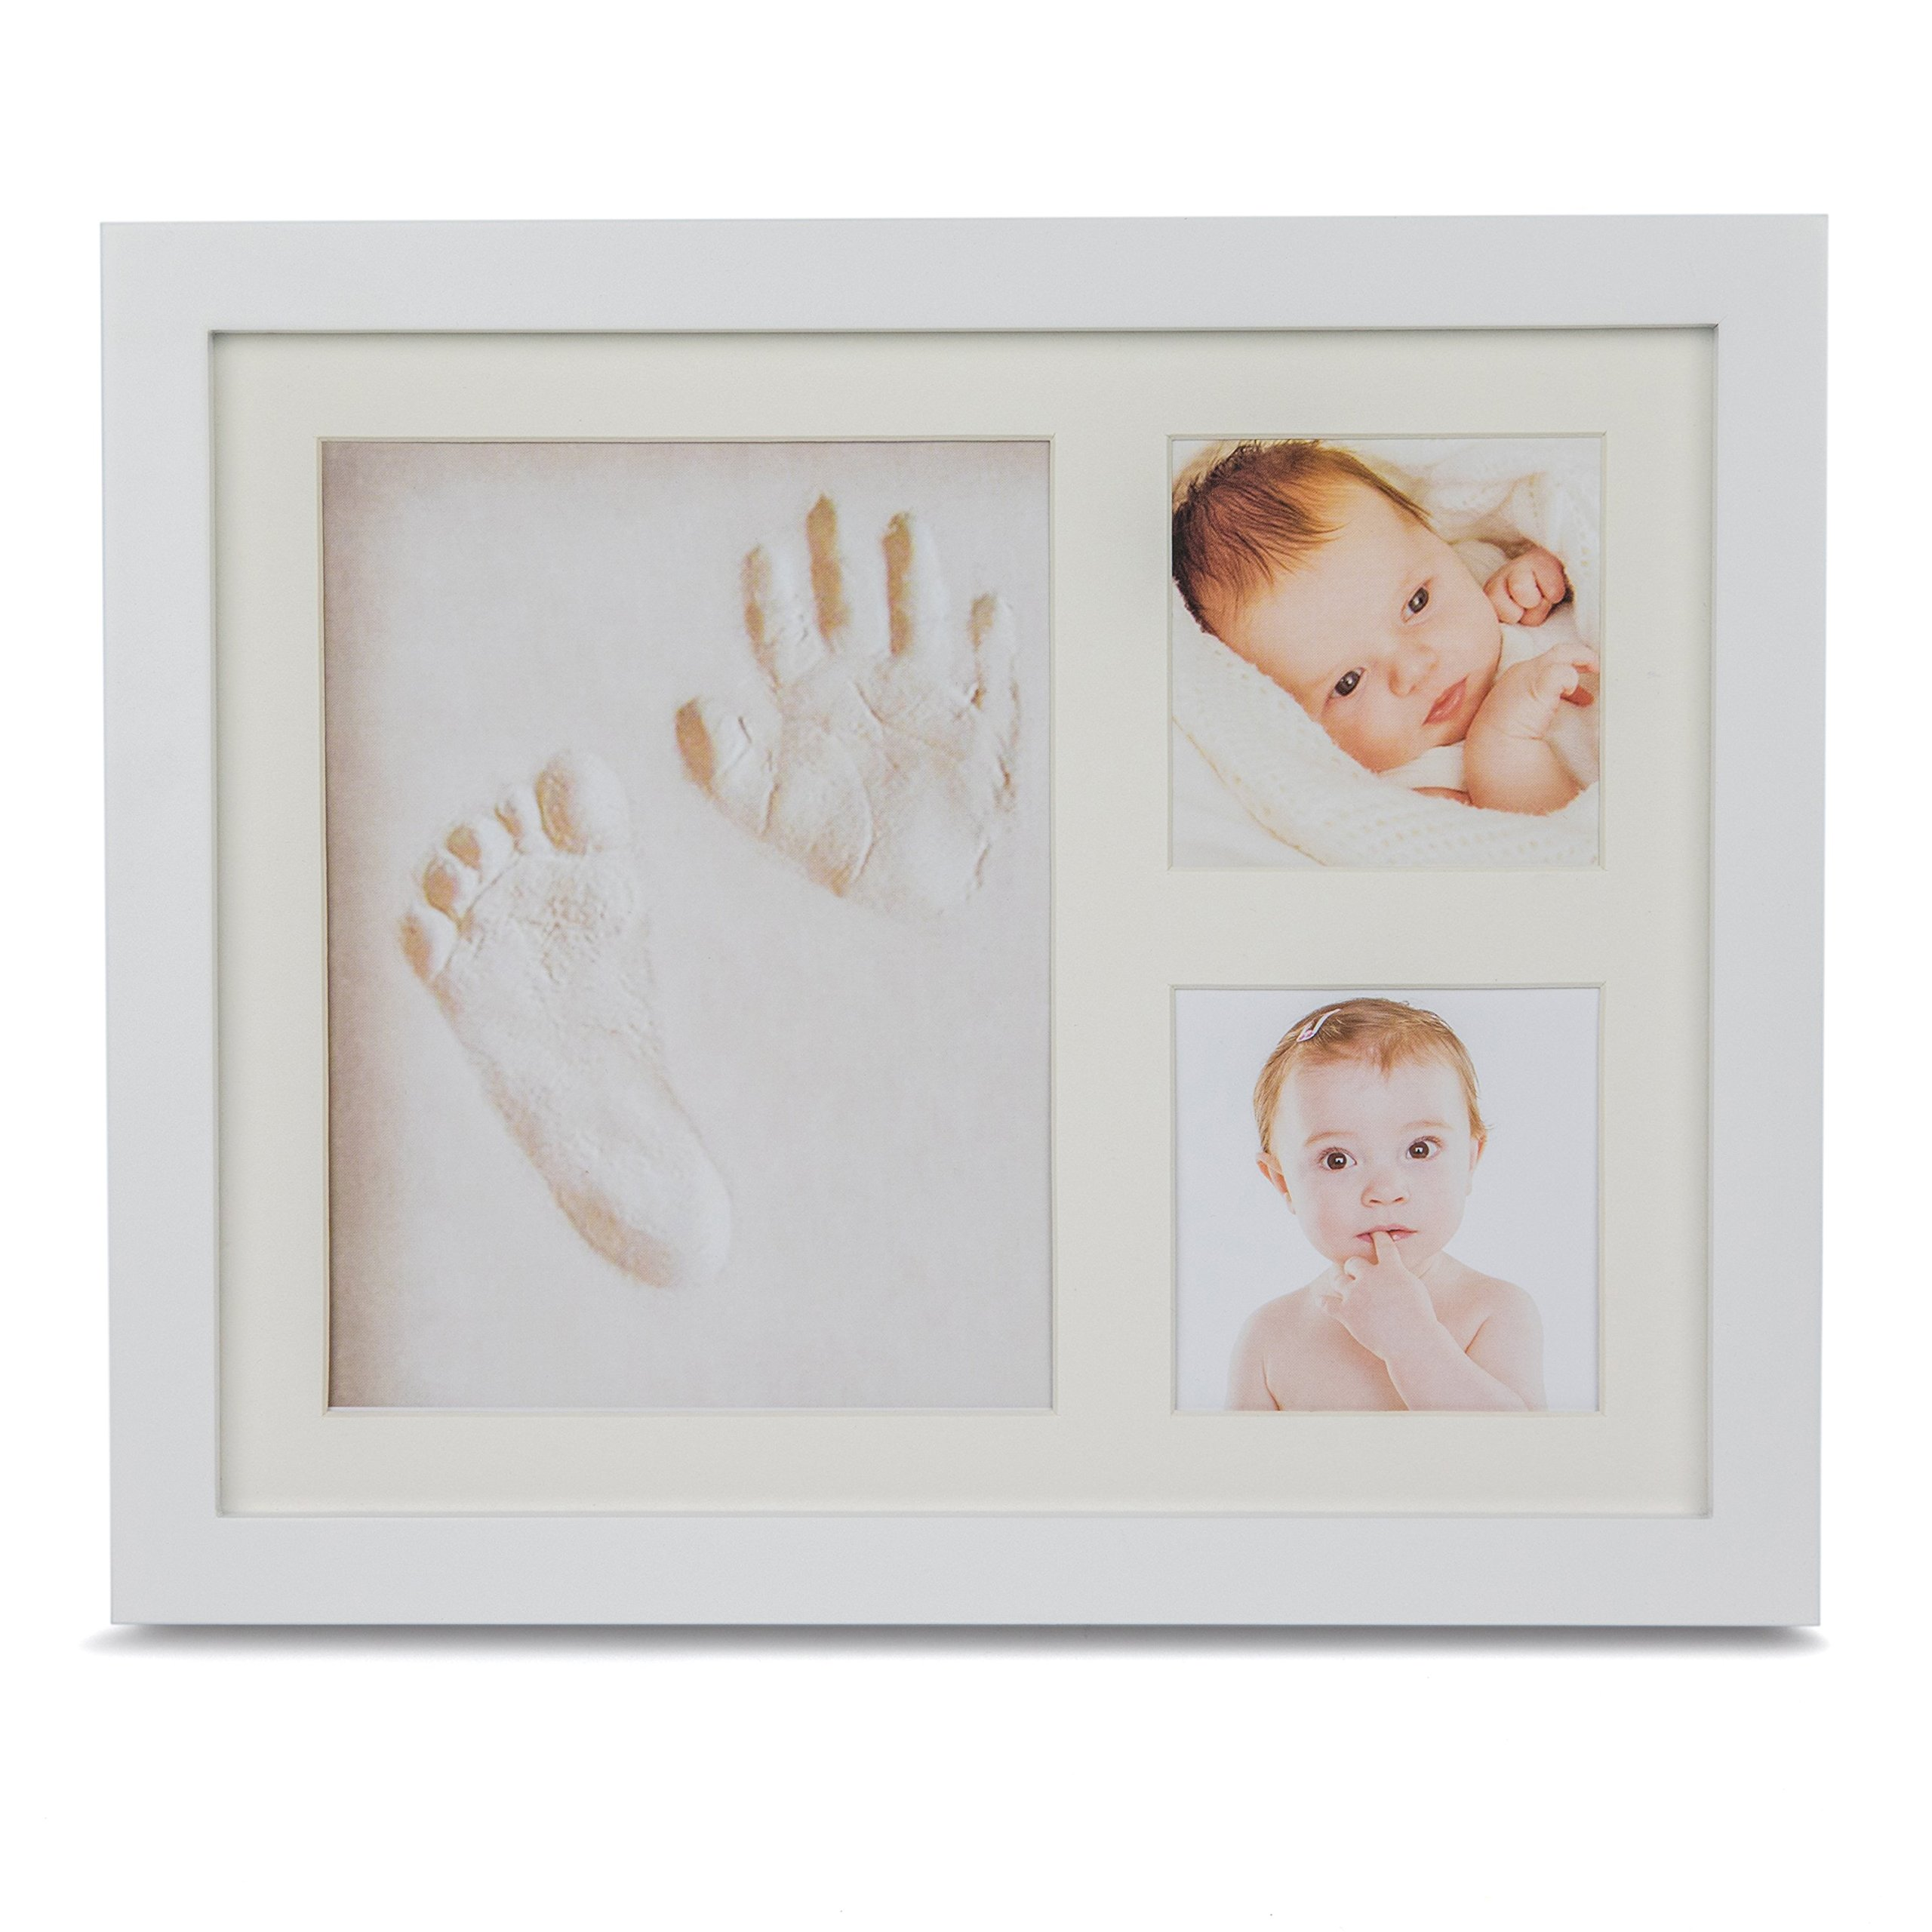 Premium Baby Handprint Kit by Forever Tenille - Newborn Picture Frame with Non-Toxic Clay - Personalized Keepsake Footprint Kit - Luxury Baby Shower Gift for Boys and Girls